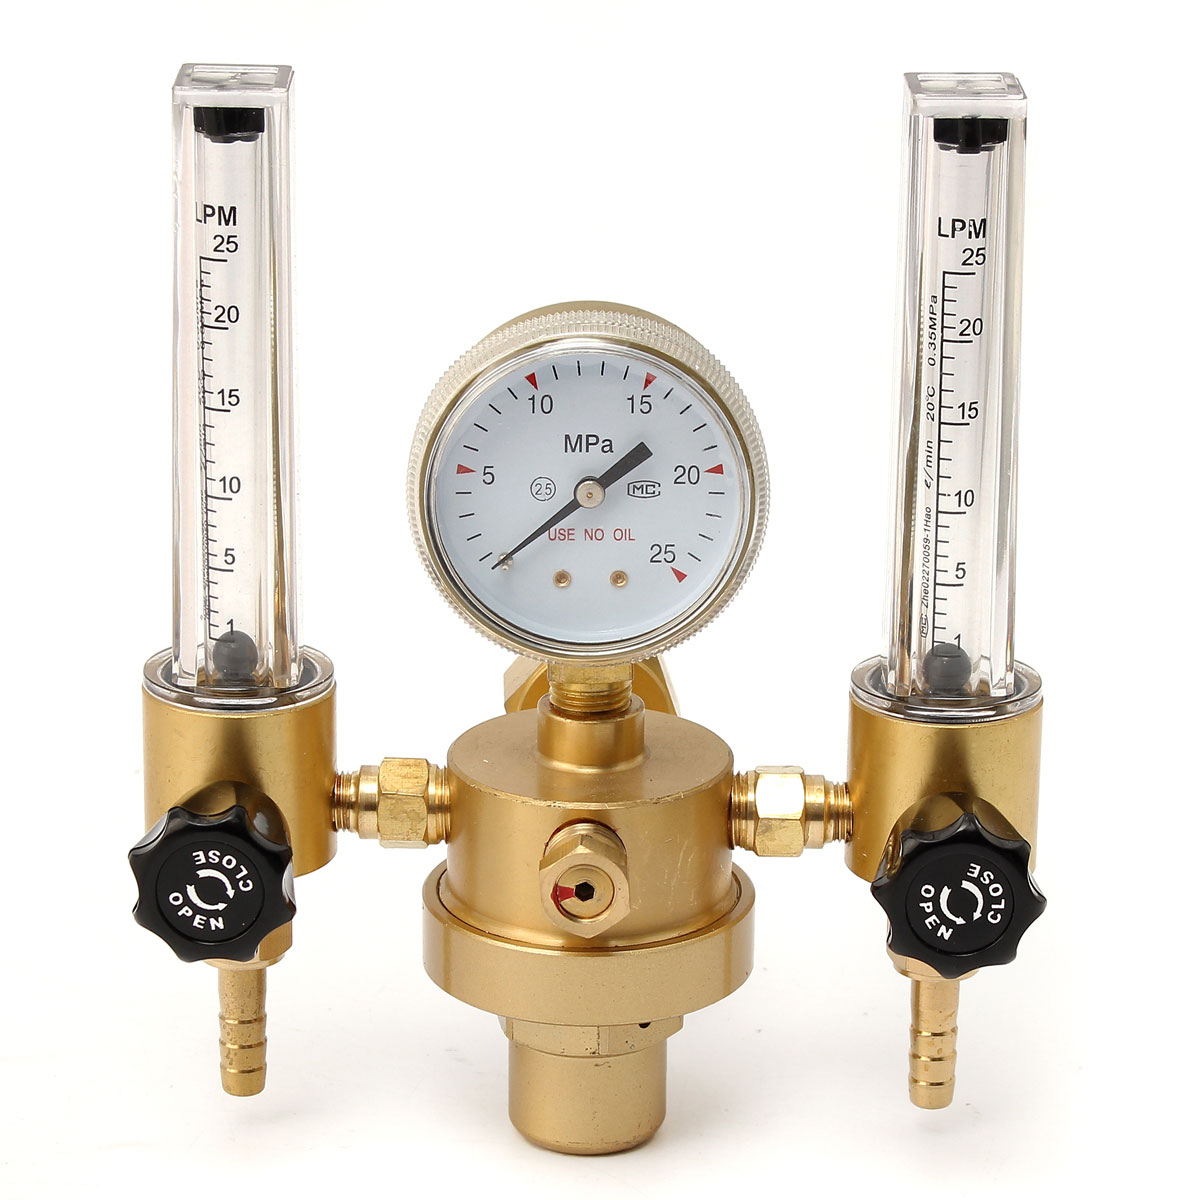 Flow Meter For Welding Gas 3//8BSP Fitting Save wasting welding gas.